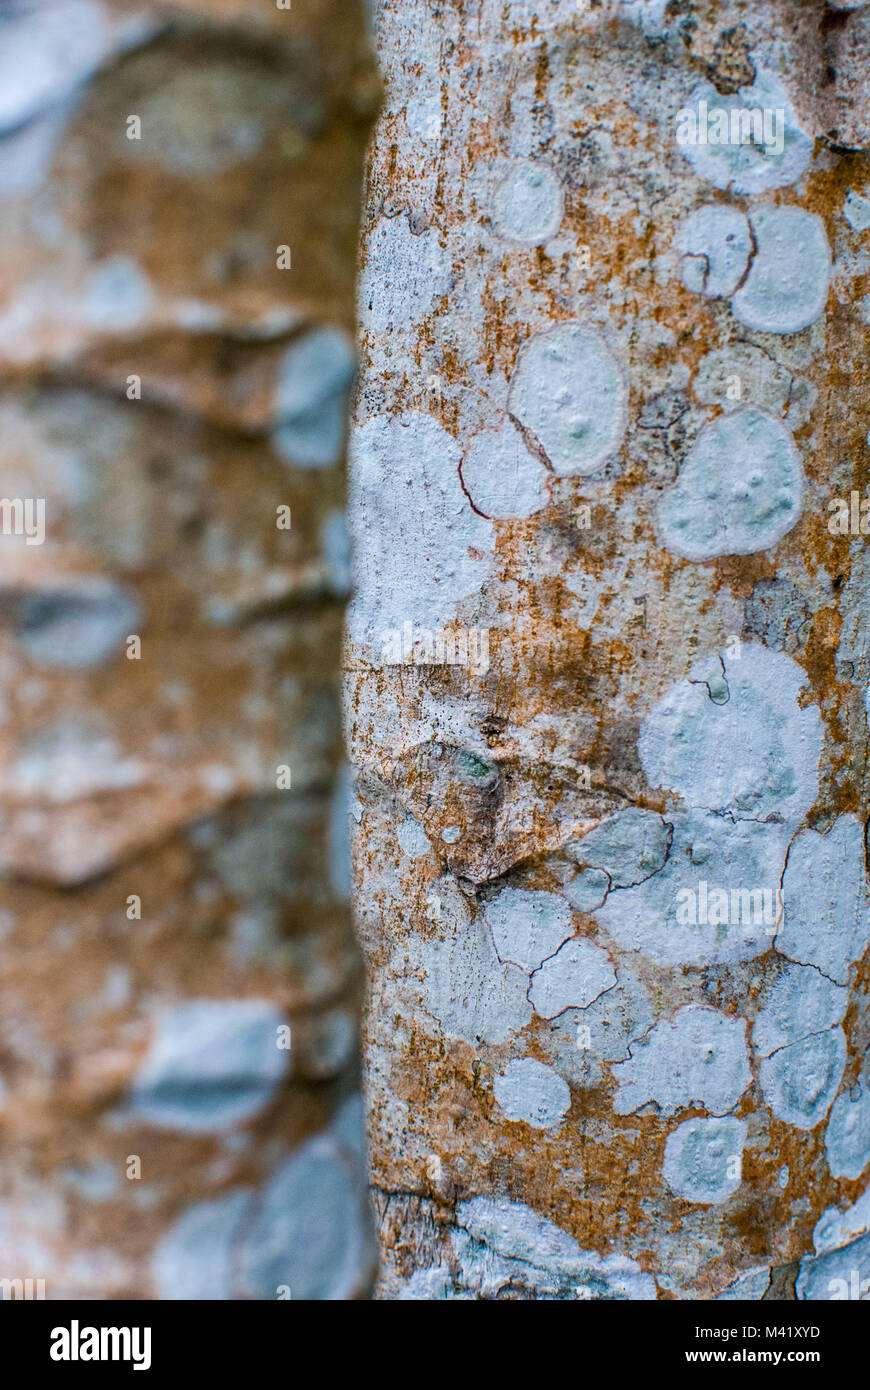 A closeup photo showing the textured detail of the bark of two tree trunks Stock Photo